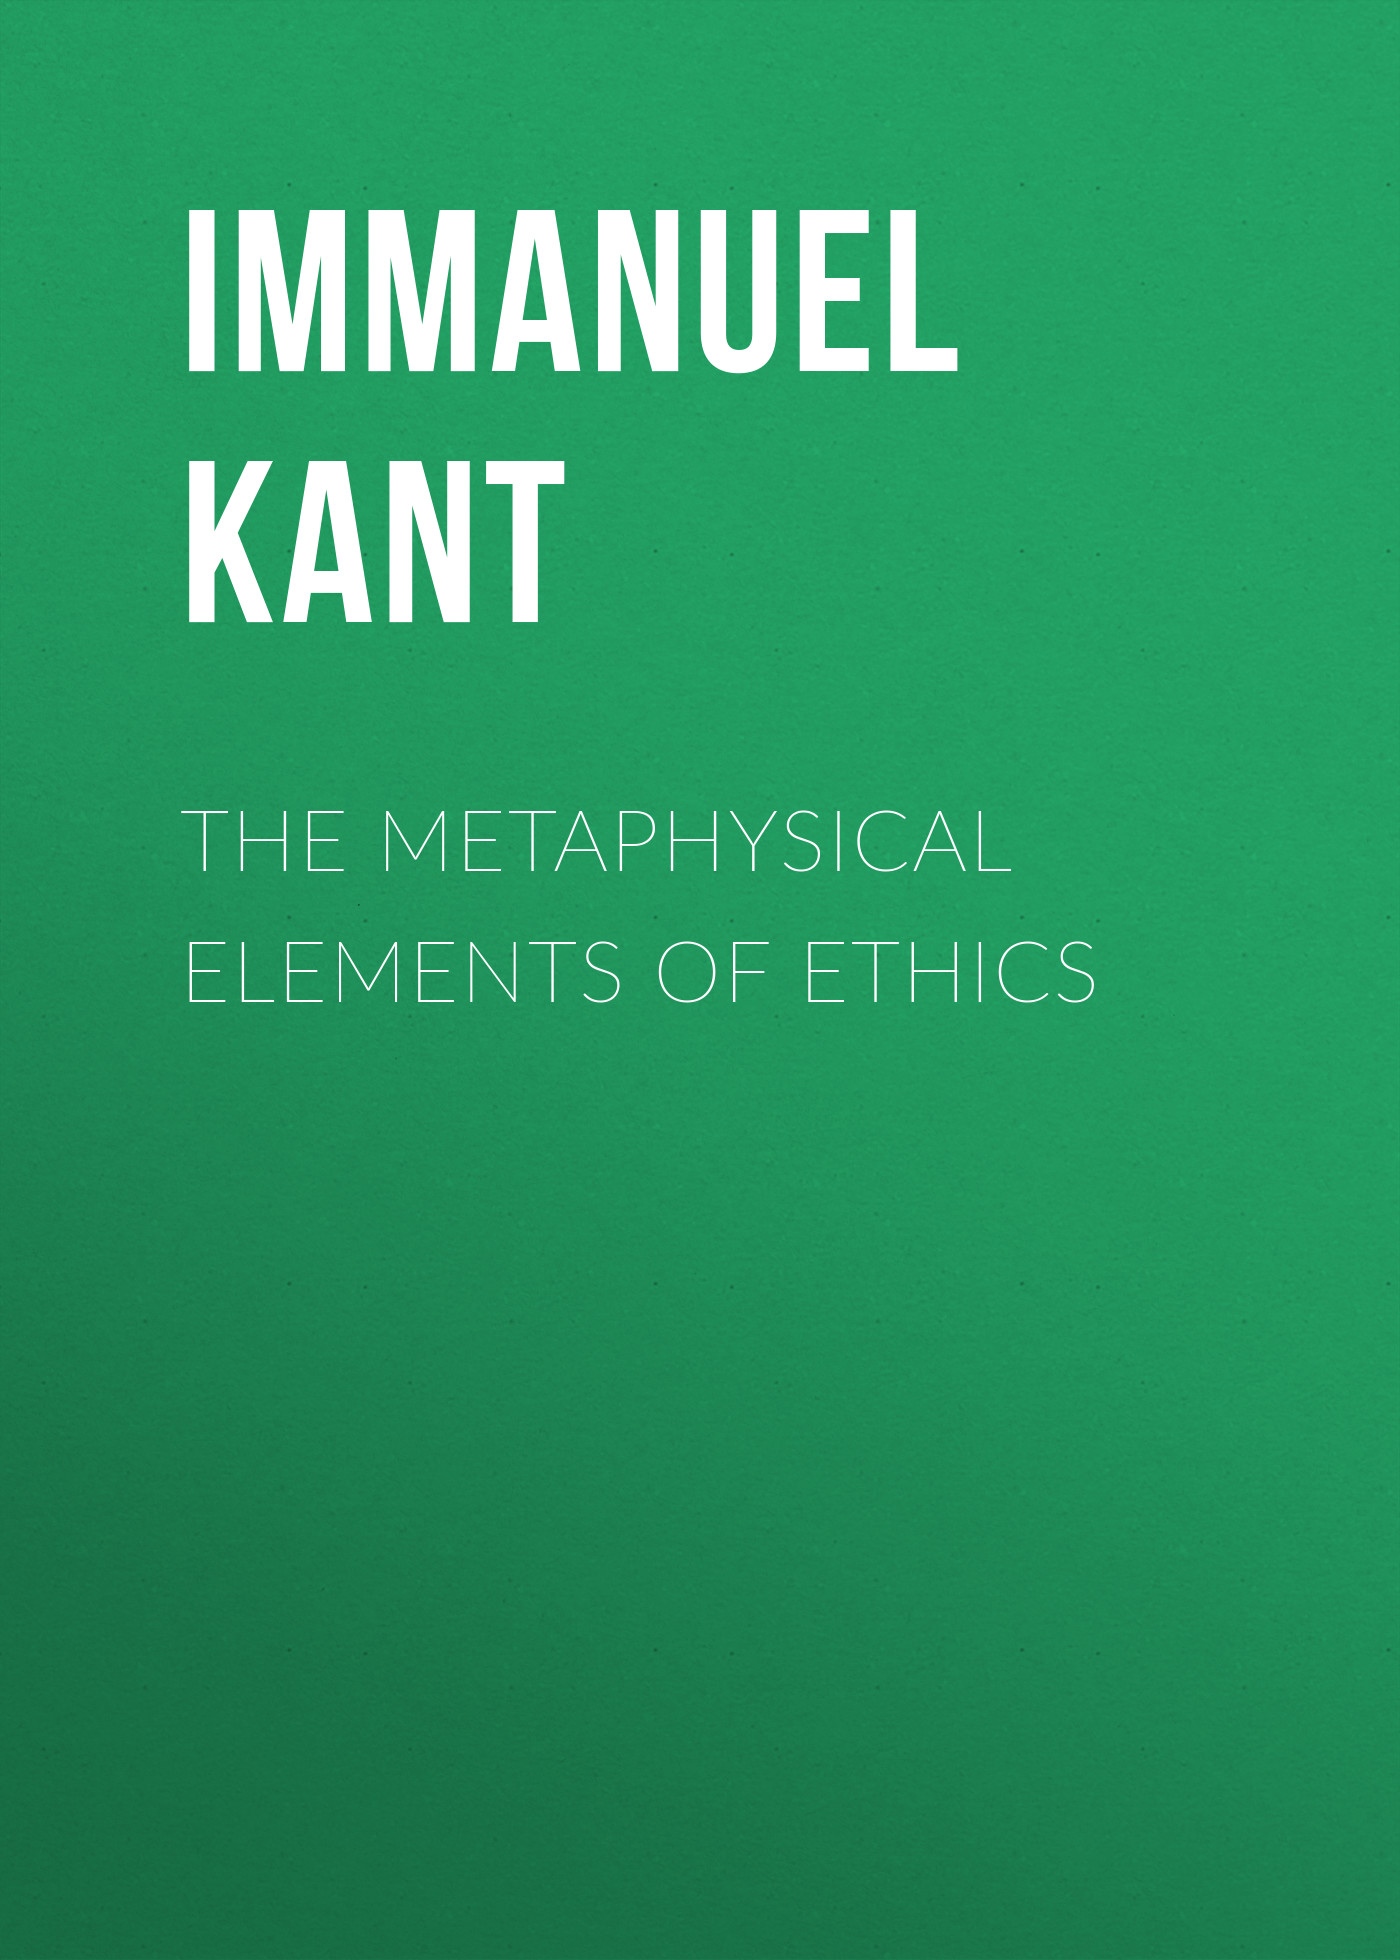 Immanuel Kant The Metaphysical Elements of Ethics emergency ethics